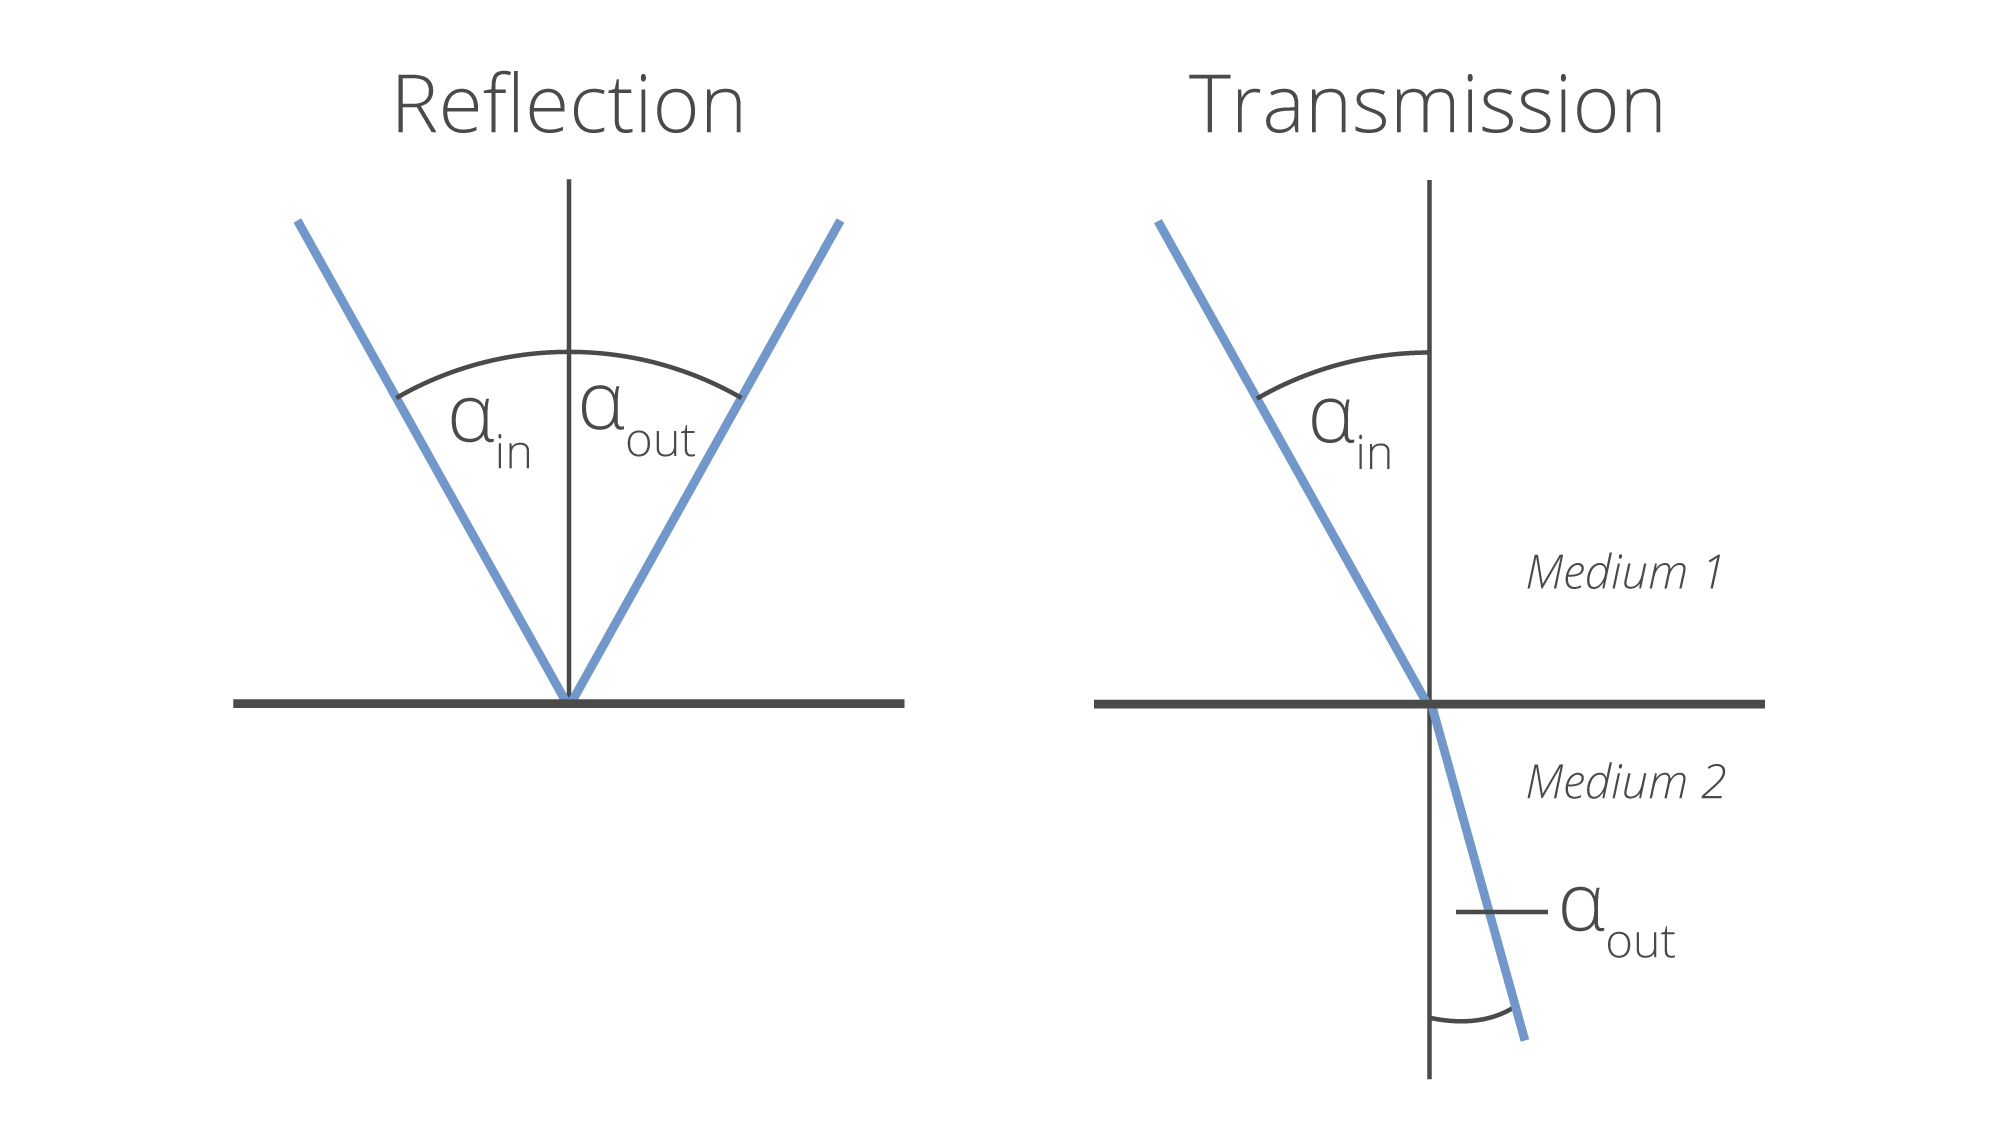 Fig.2: When directly reflected or directly transmitted, a unidirectional beam follows the laws of geometrical optics: <br />direct reflection (left)